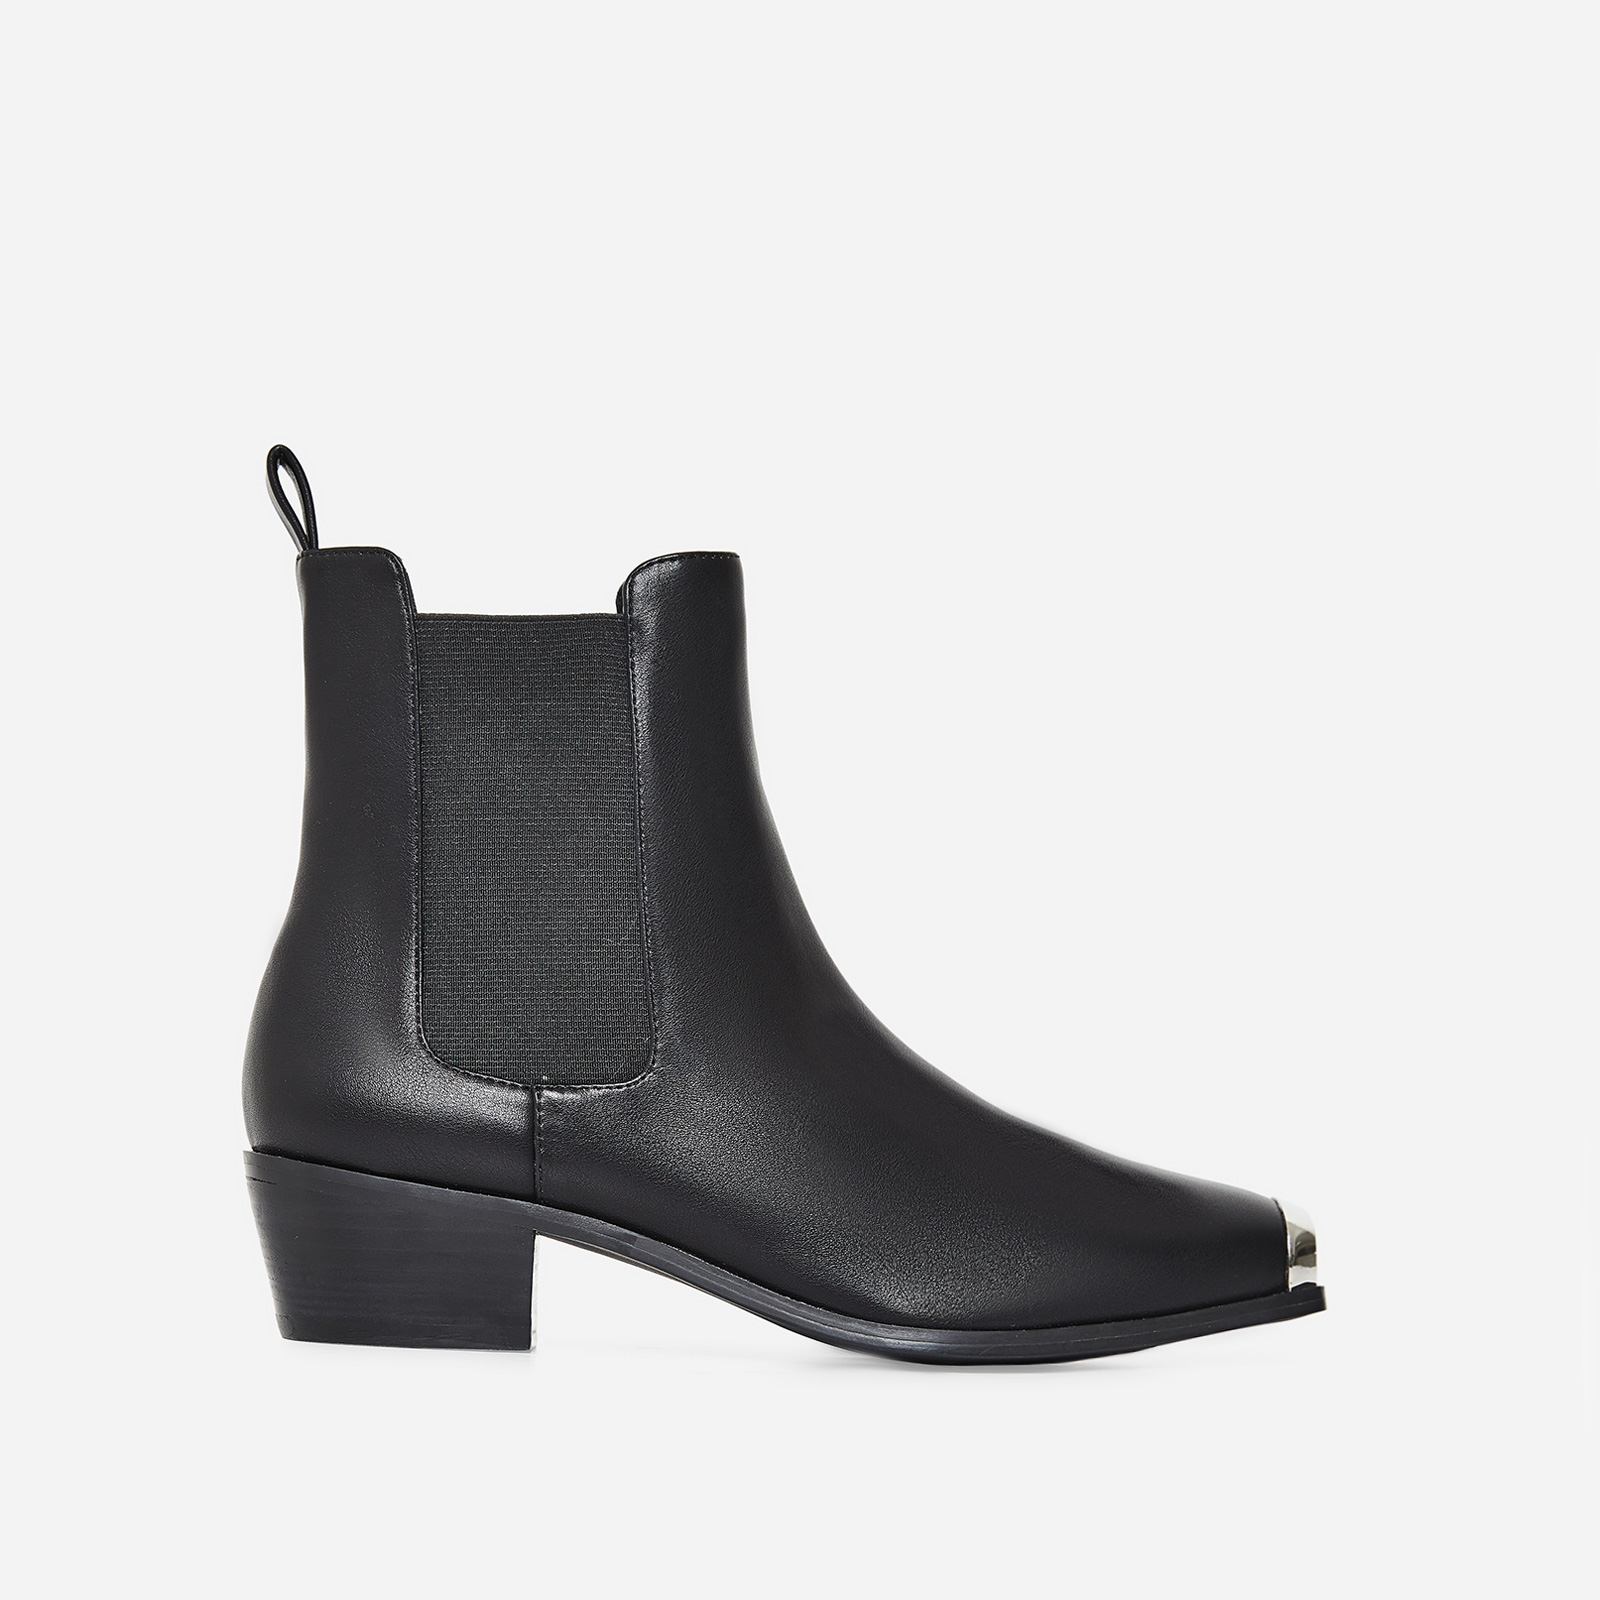 Hauser Toe Cap Western Ankle Boot In Black Faux Leather